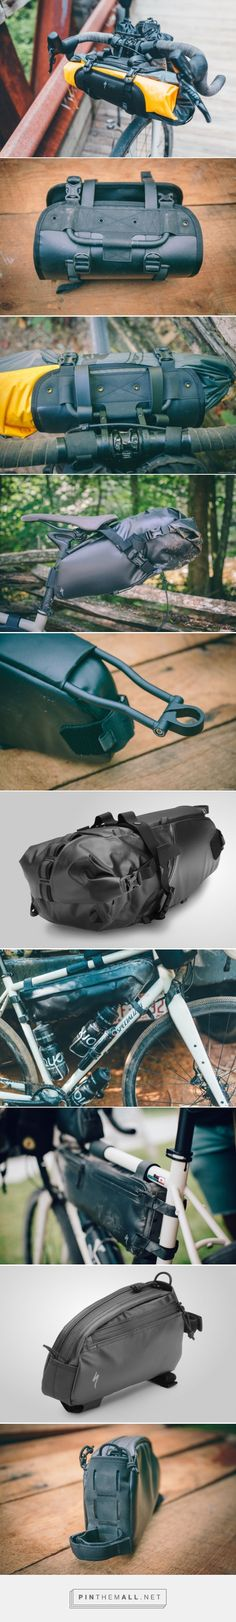 Specialized Burra Burra Bikepacking Bags